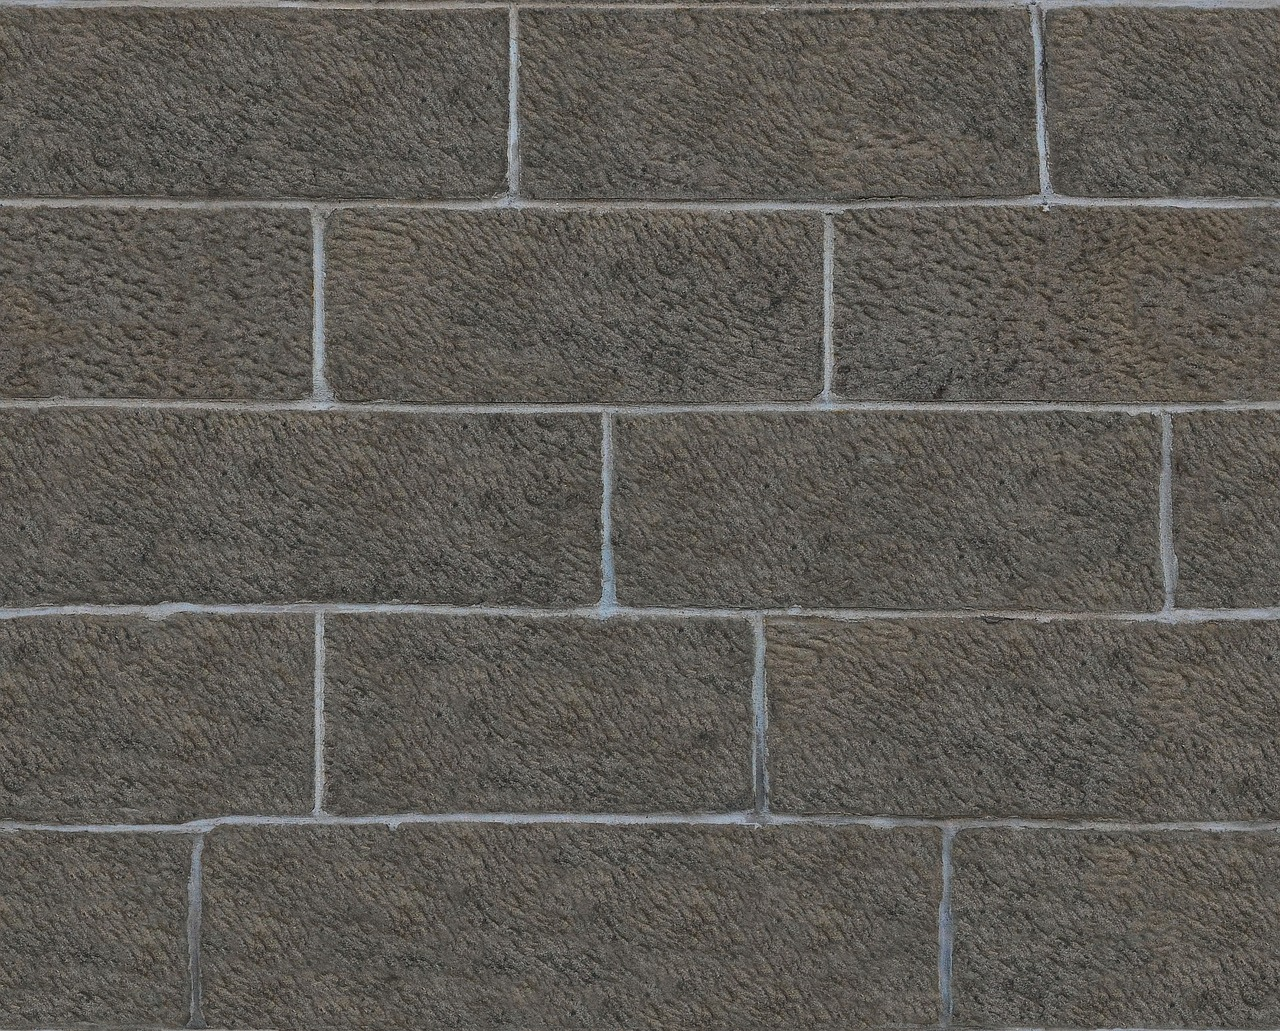 . Seamless tileable texture stone bricks   free photo from needpix com